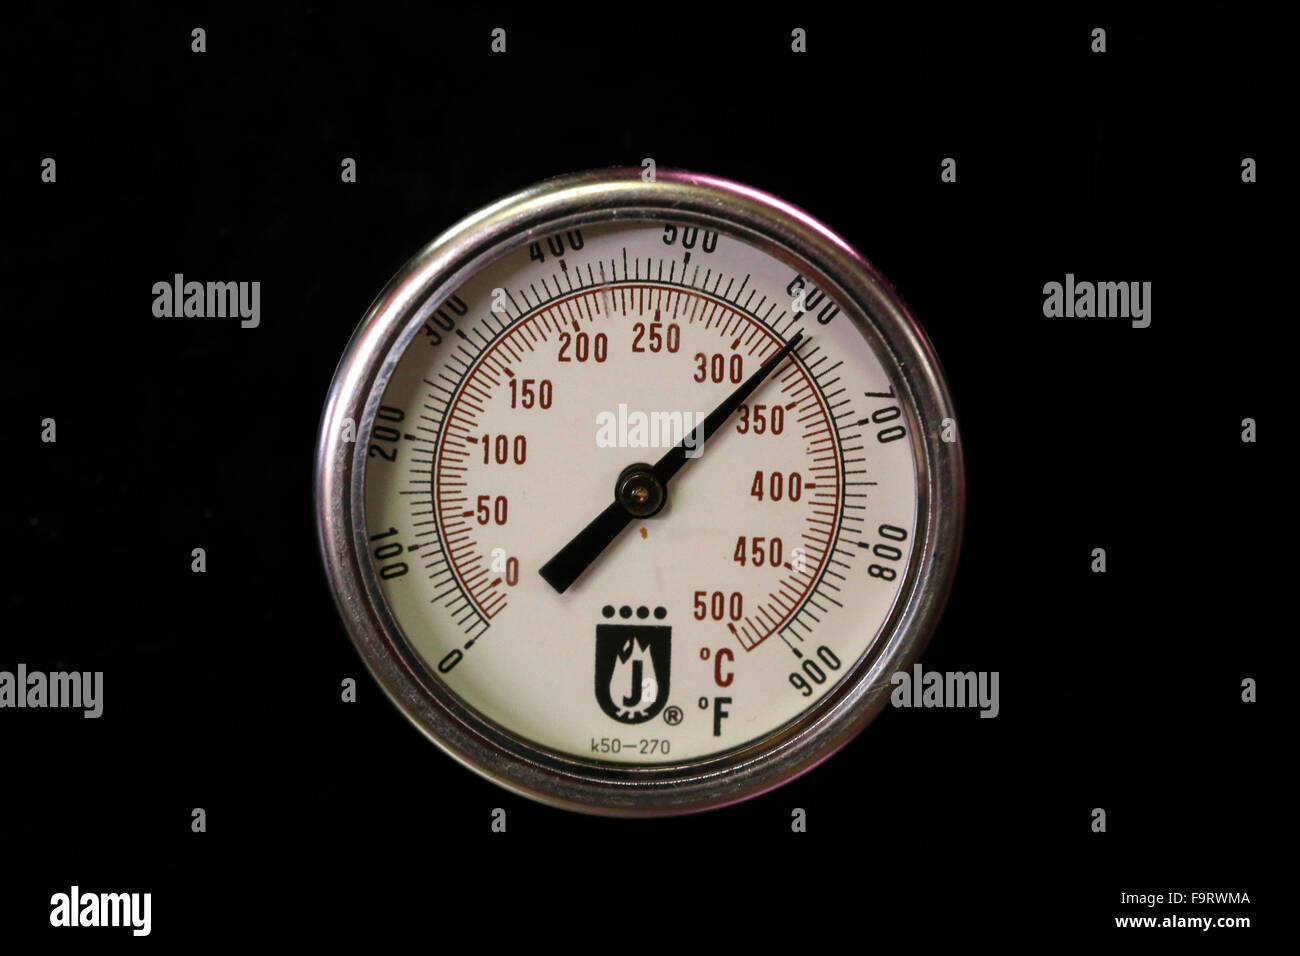 Backofen-Thermometer. Stockbild